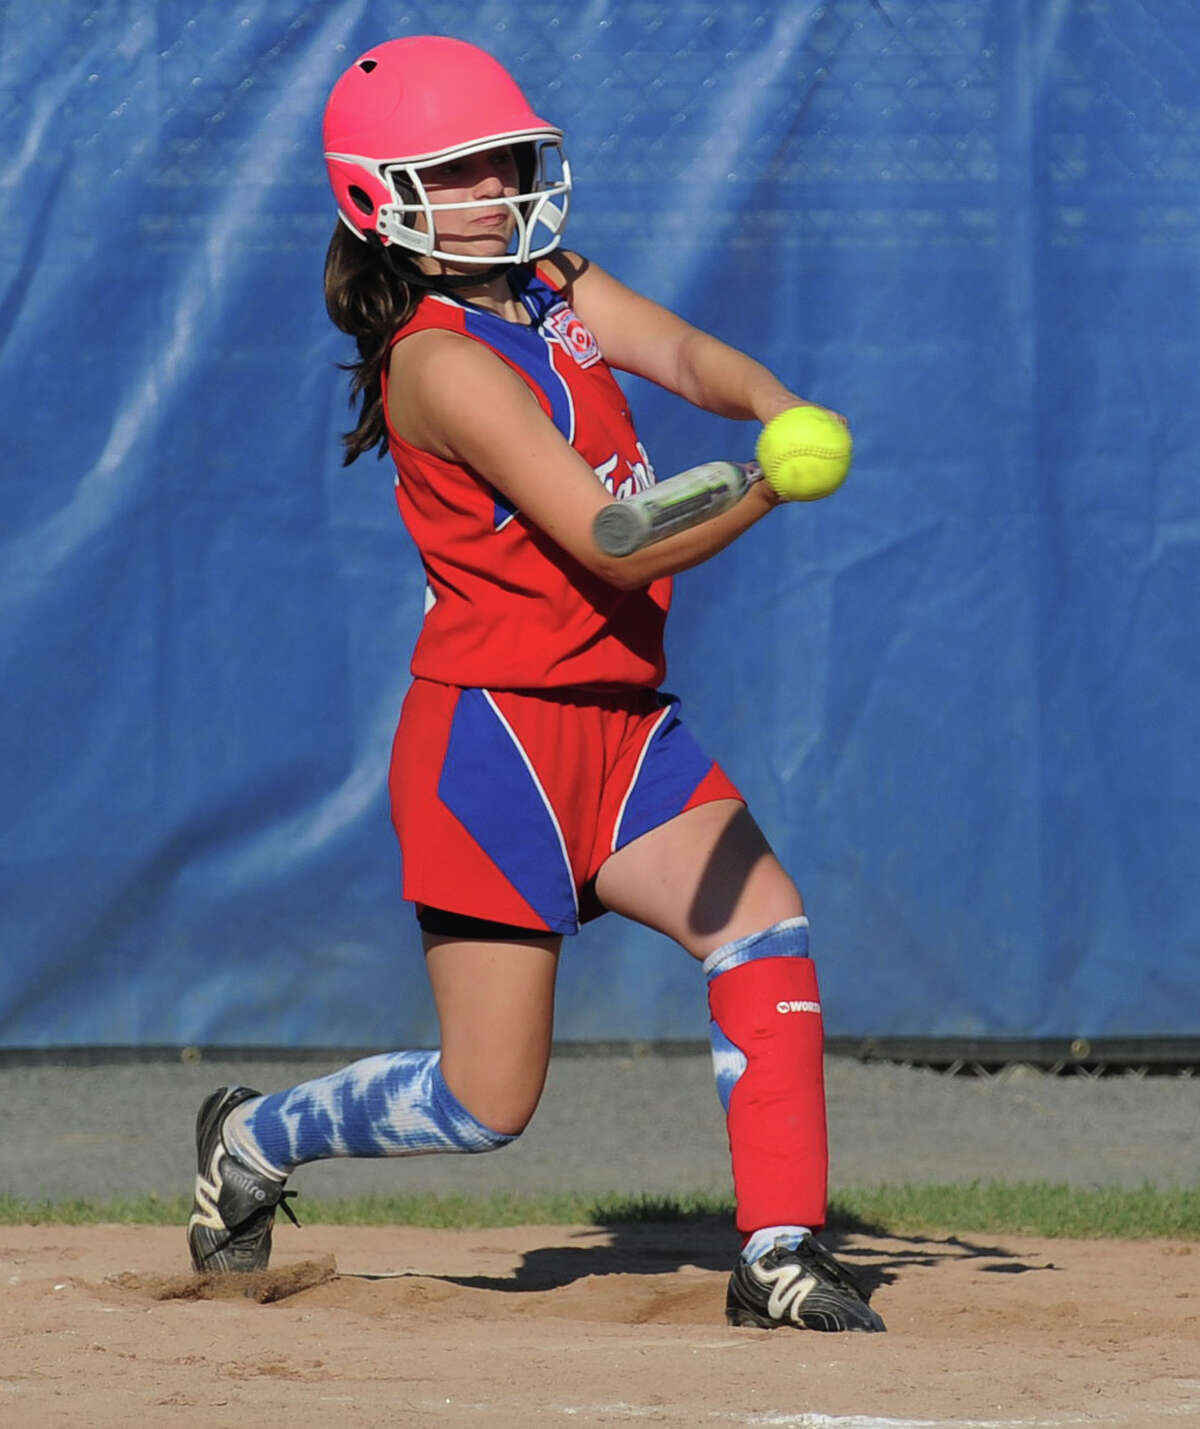 Girls Little League softball action --- similar to this scene from Fairfield's run to the Eastern Regionals last year --- will be on display next weekend in a fundraiser at the South Pine Creek Recreation Area.